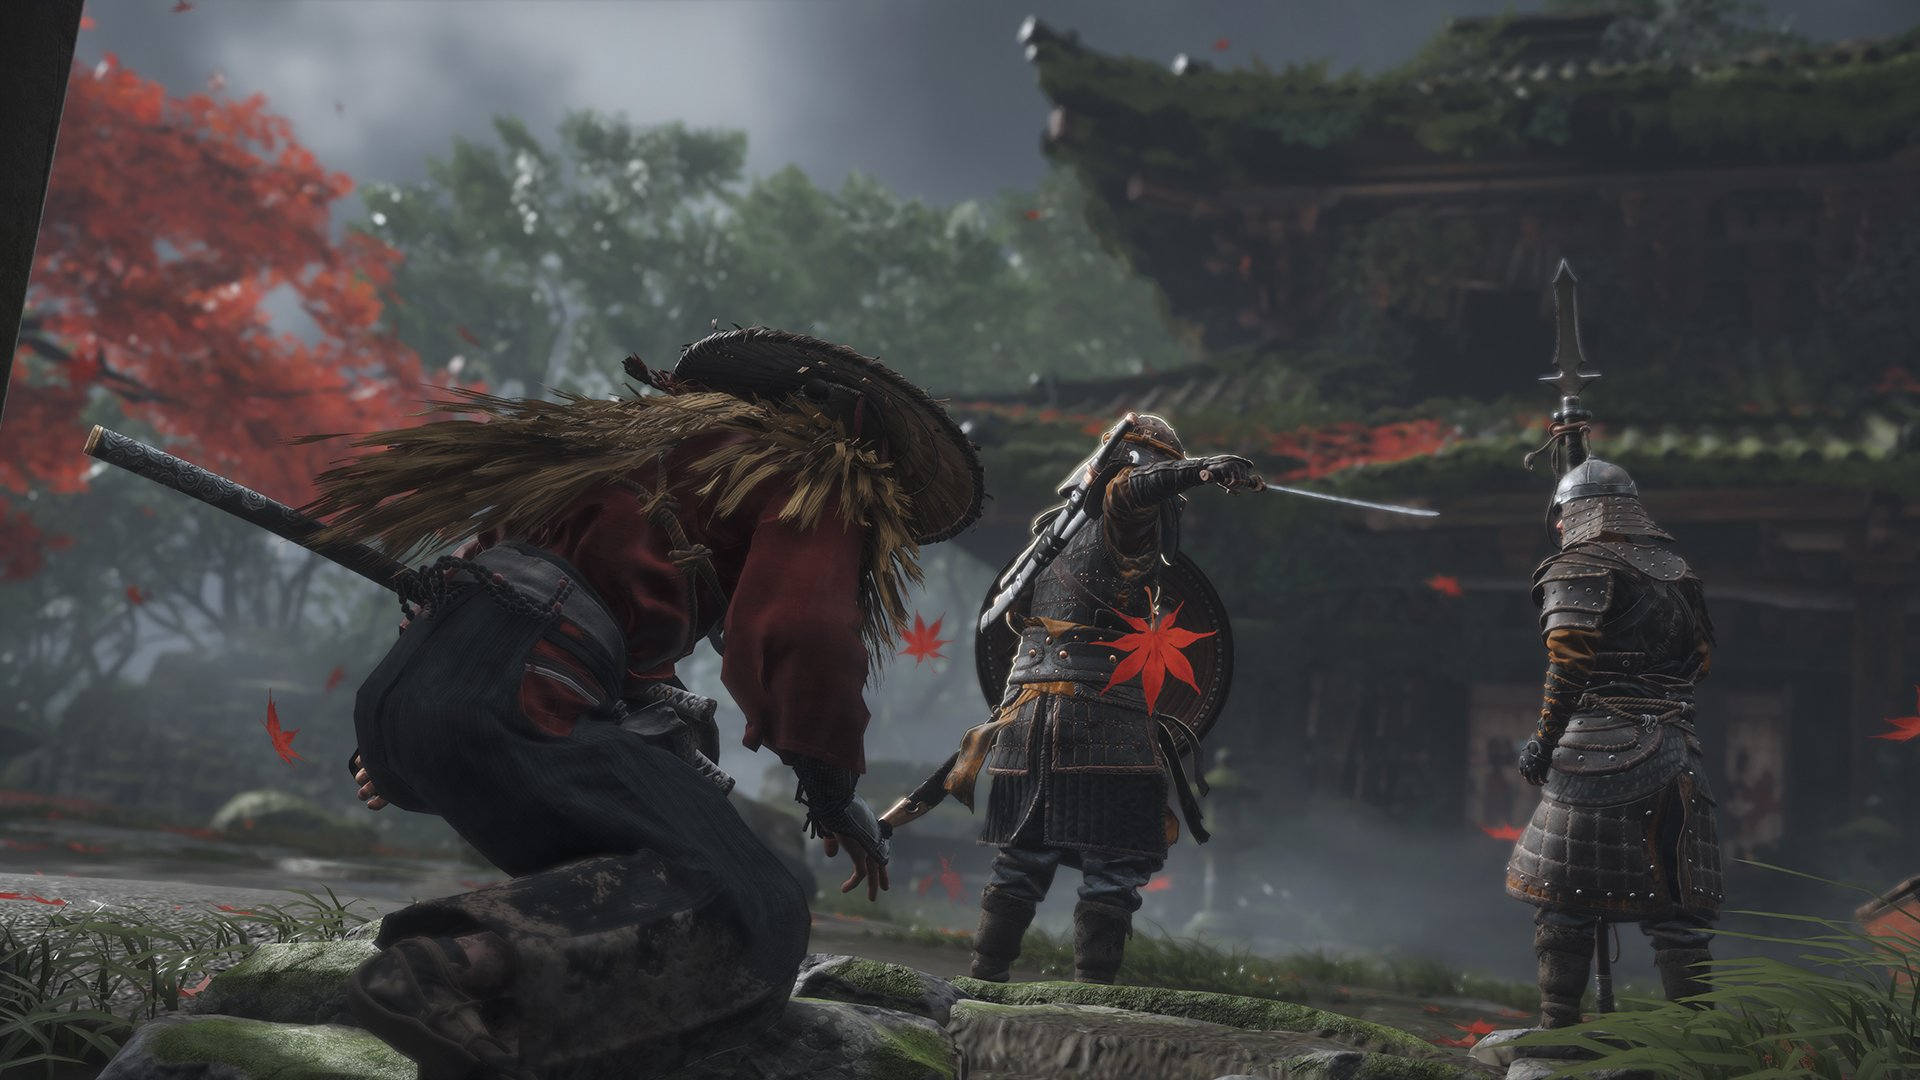 Where to get Wax Wood in Ghost of Tsushima